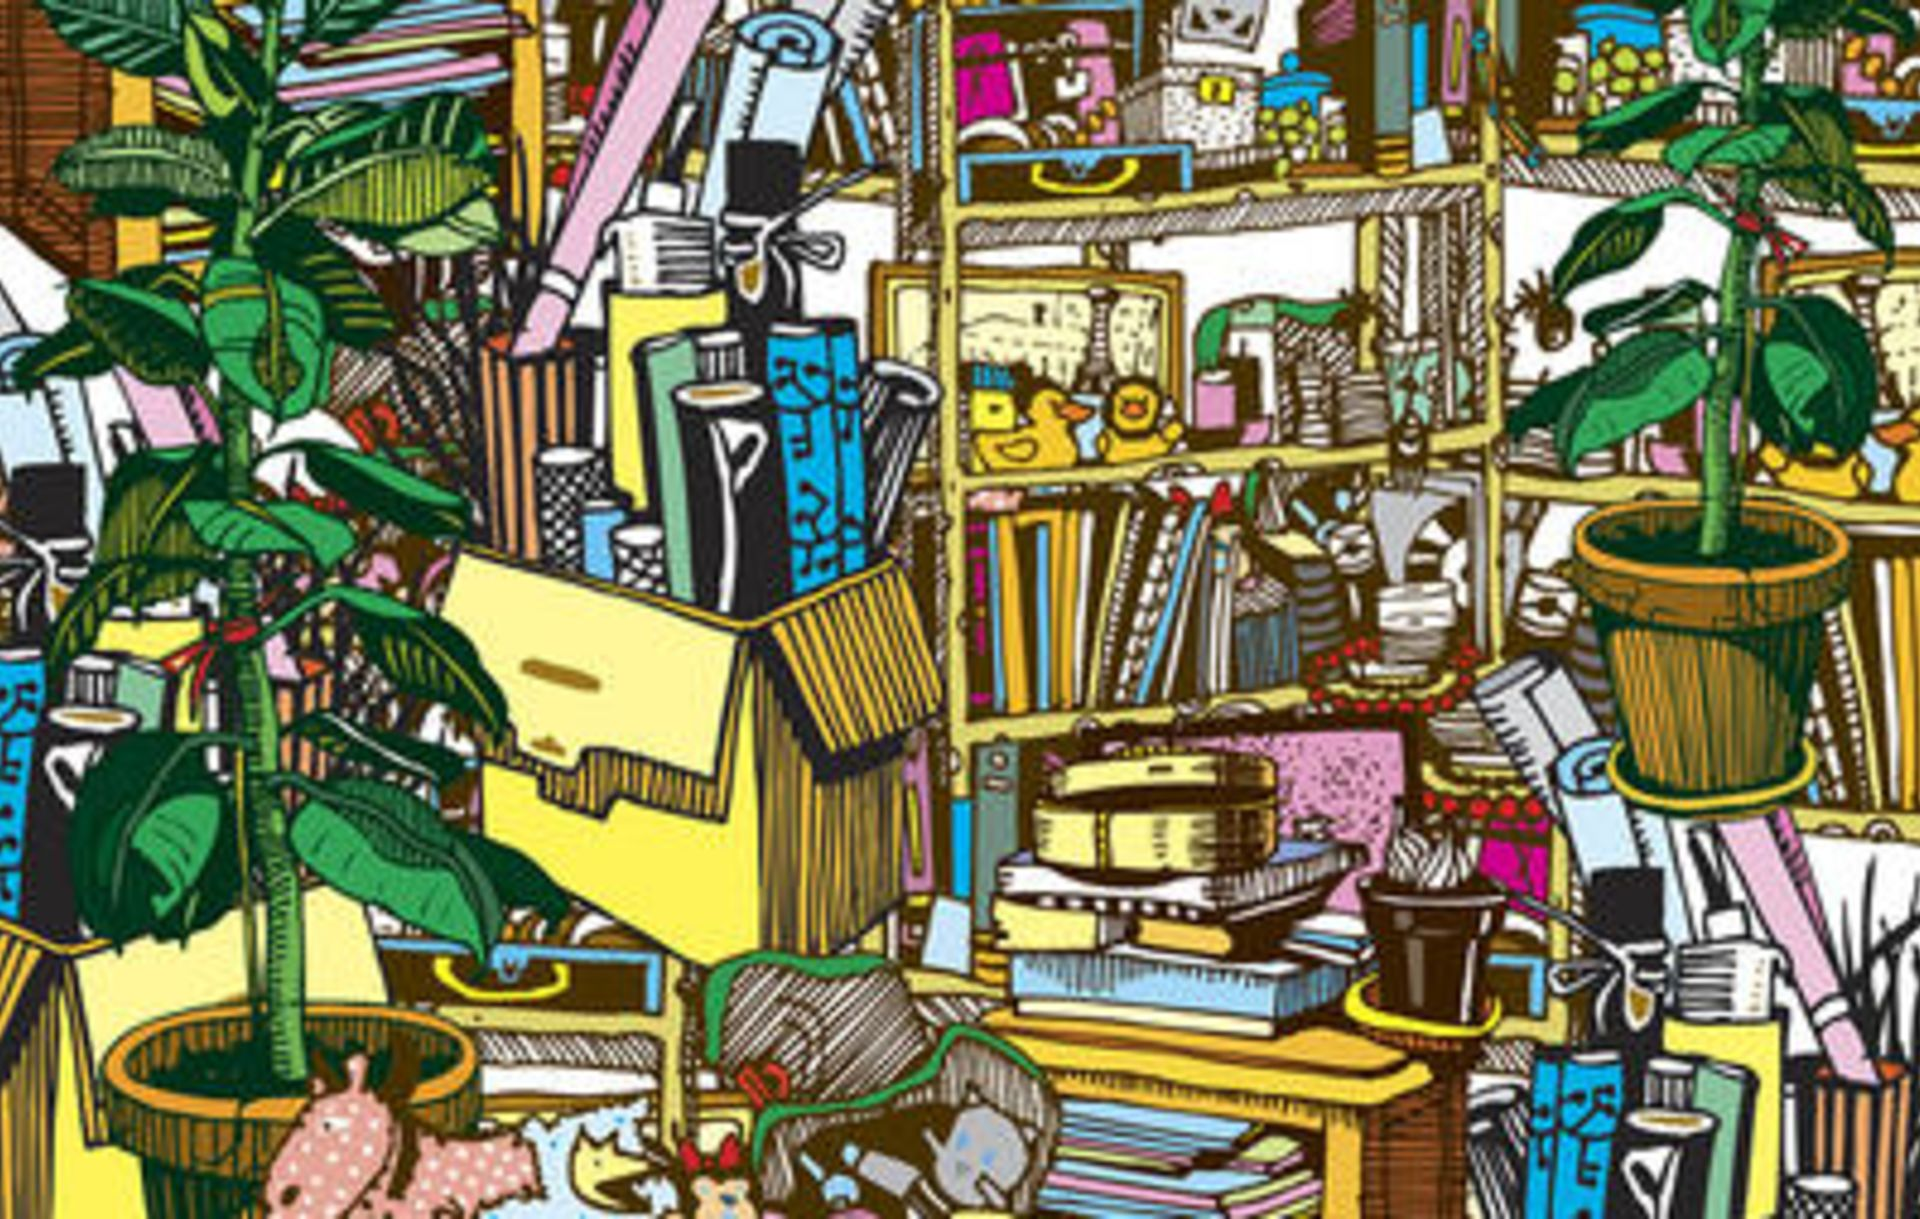 20 Tips to De-Clutter your home